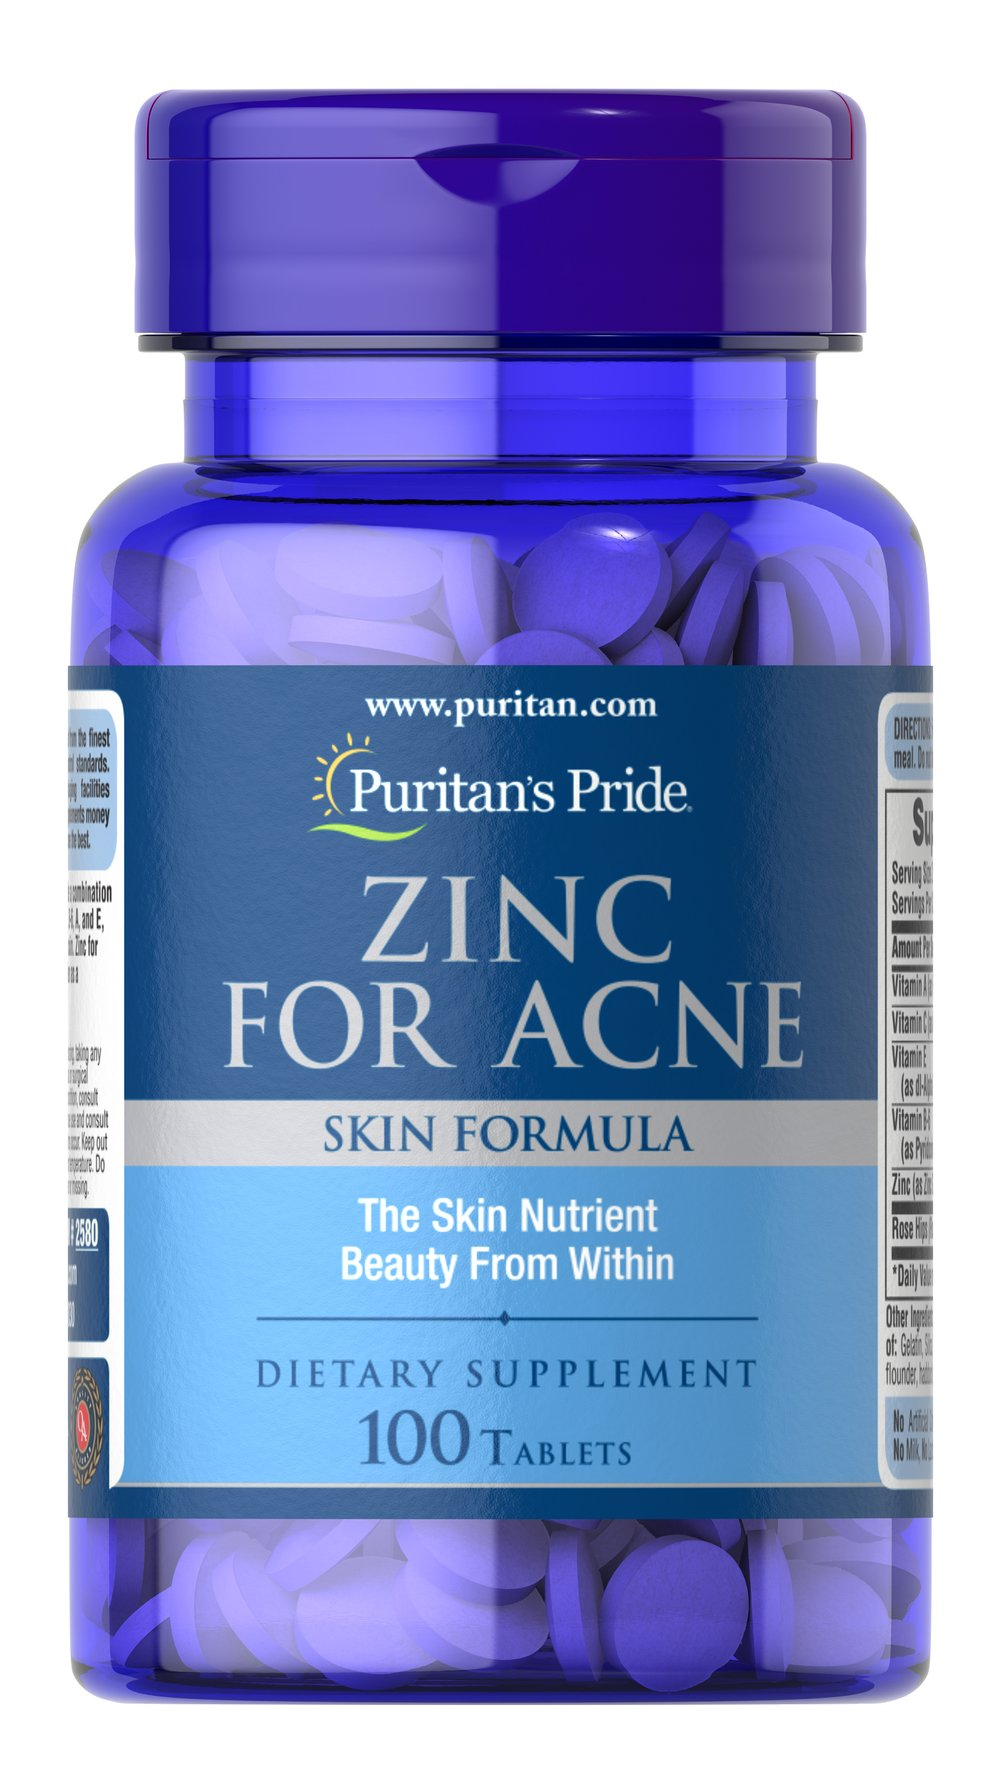 Zinc for Acne <p>Multivitamin with High Potency Zinc Supplement</p><p>Zinc for Acne tablets provide a combination of nutrients including zinc and Vitamins C, B-6, A, and E, specially blended for your skin. Zinc for Acne is designed to be taken as a supplement.</p> 100 Tablets  $12.99